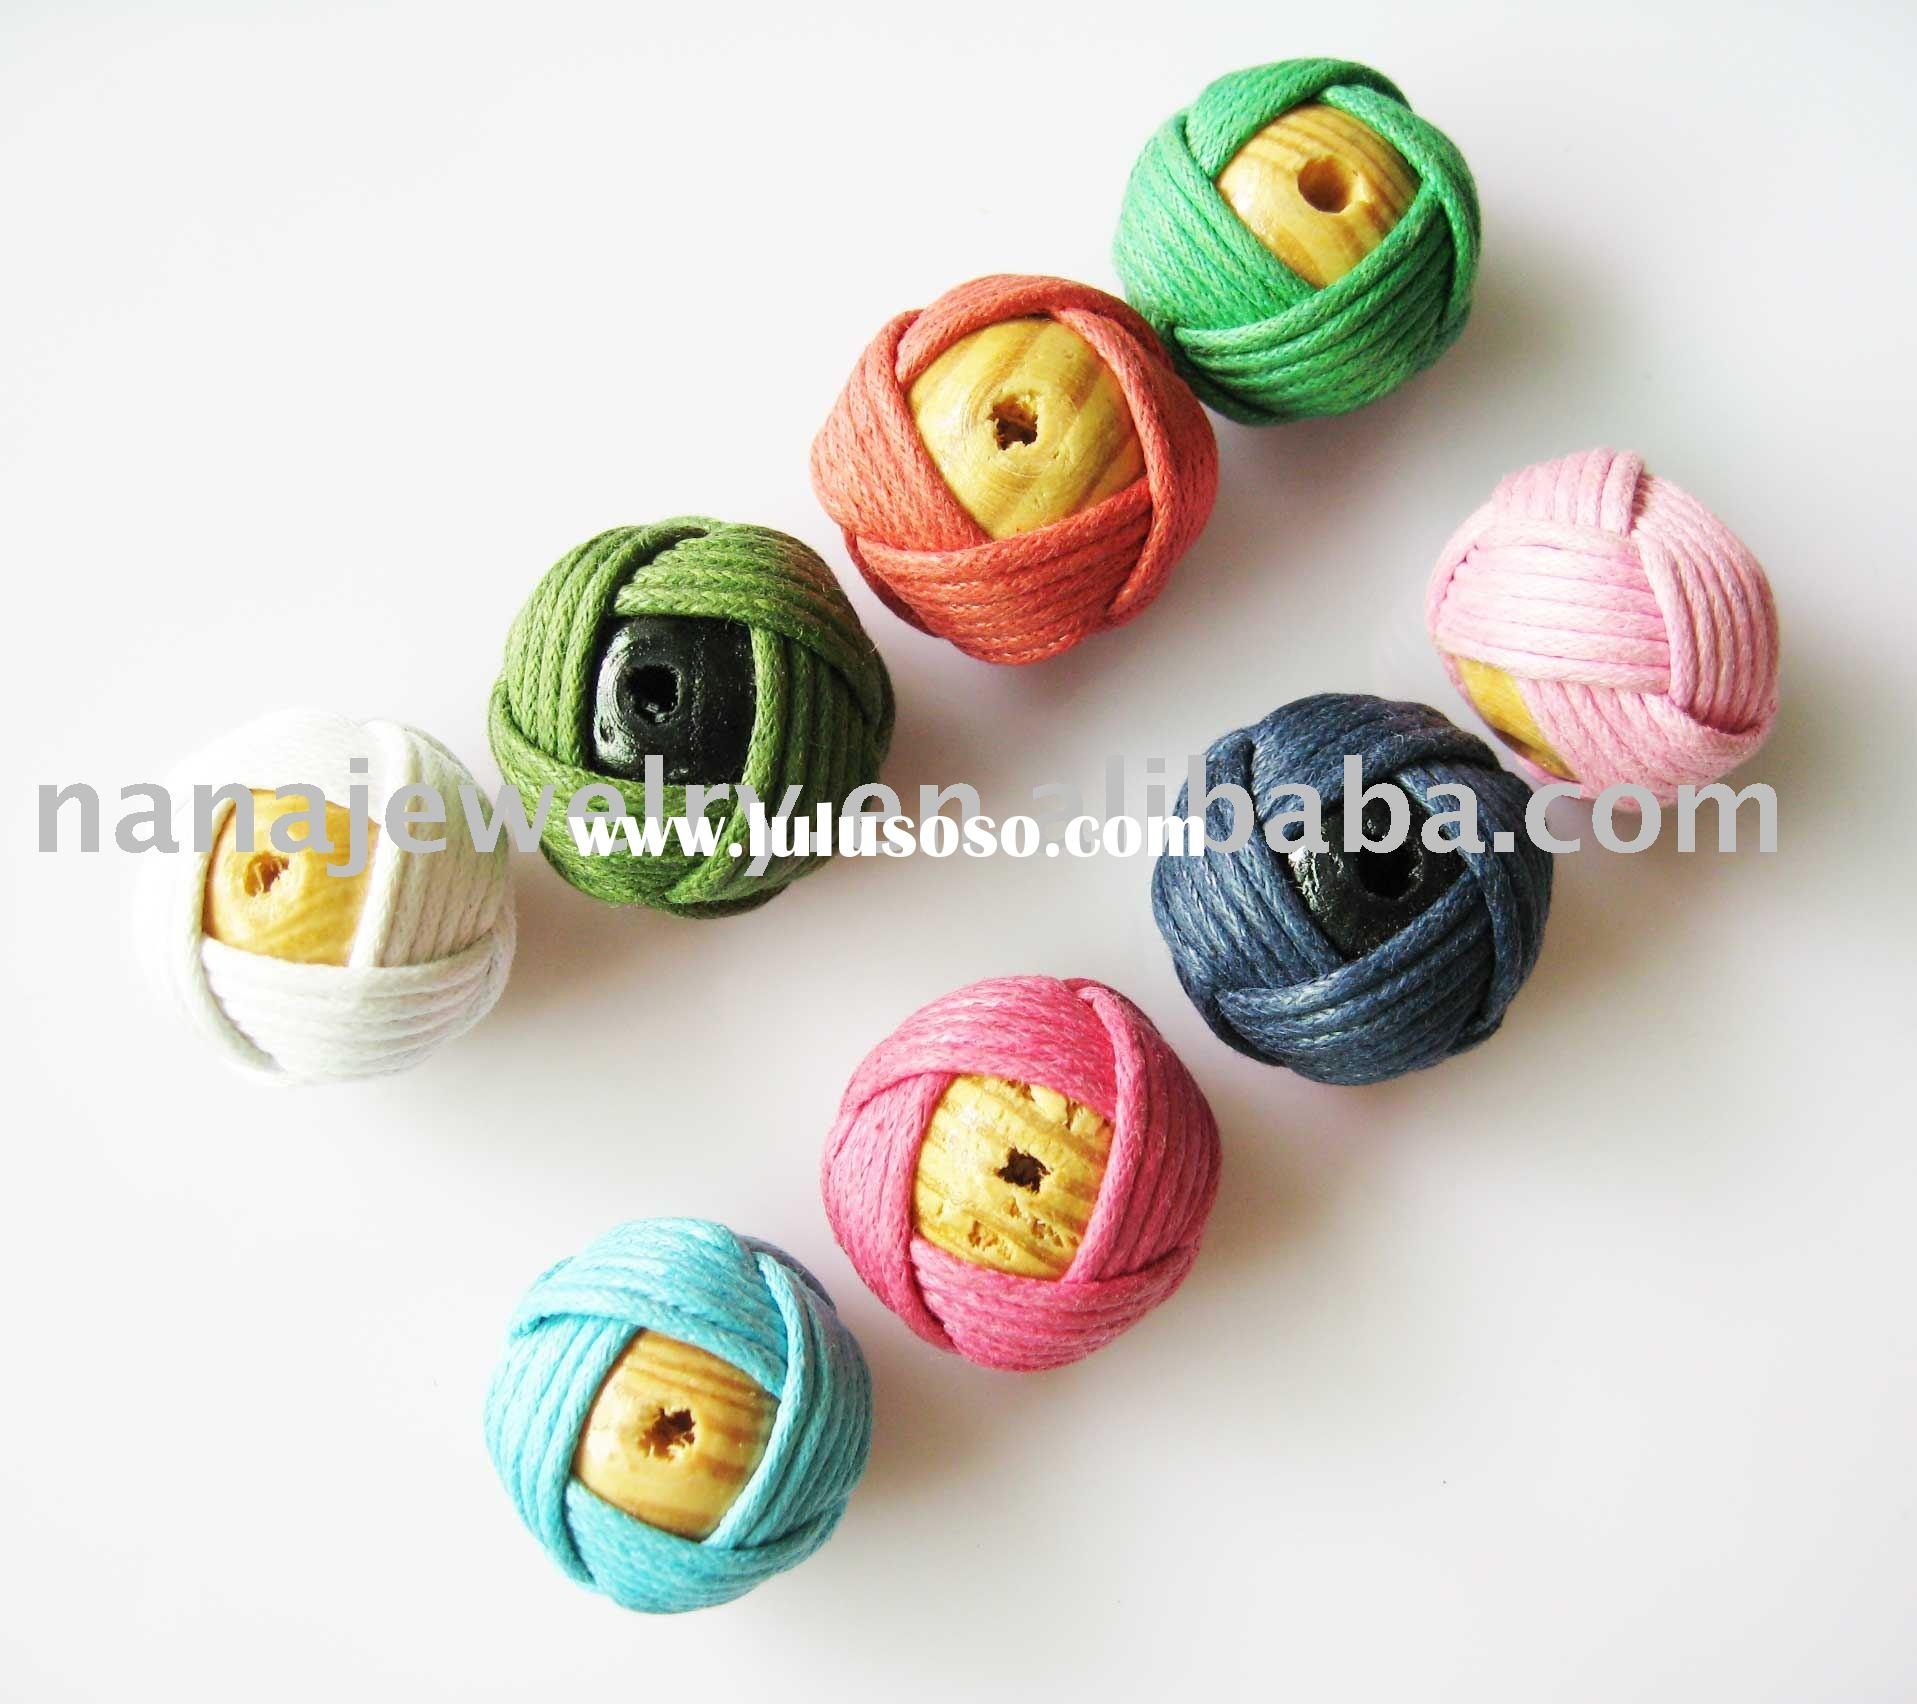 beads,pendant,cotton cord surround beads, cotton thread covered beads, wooden beads, glass beads,jew